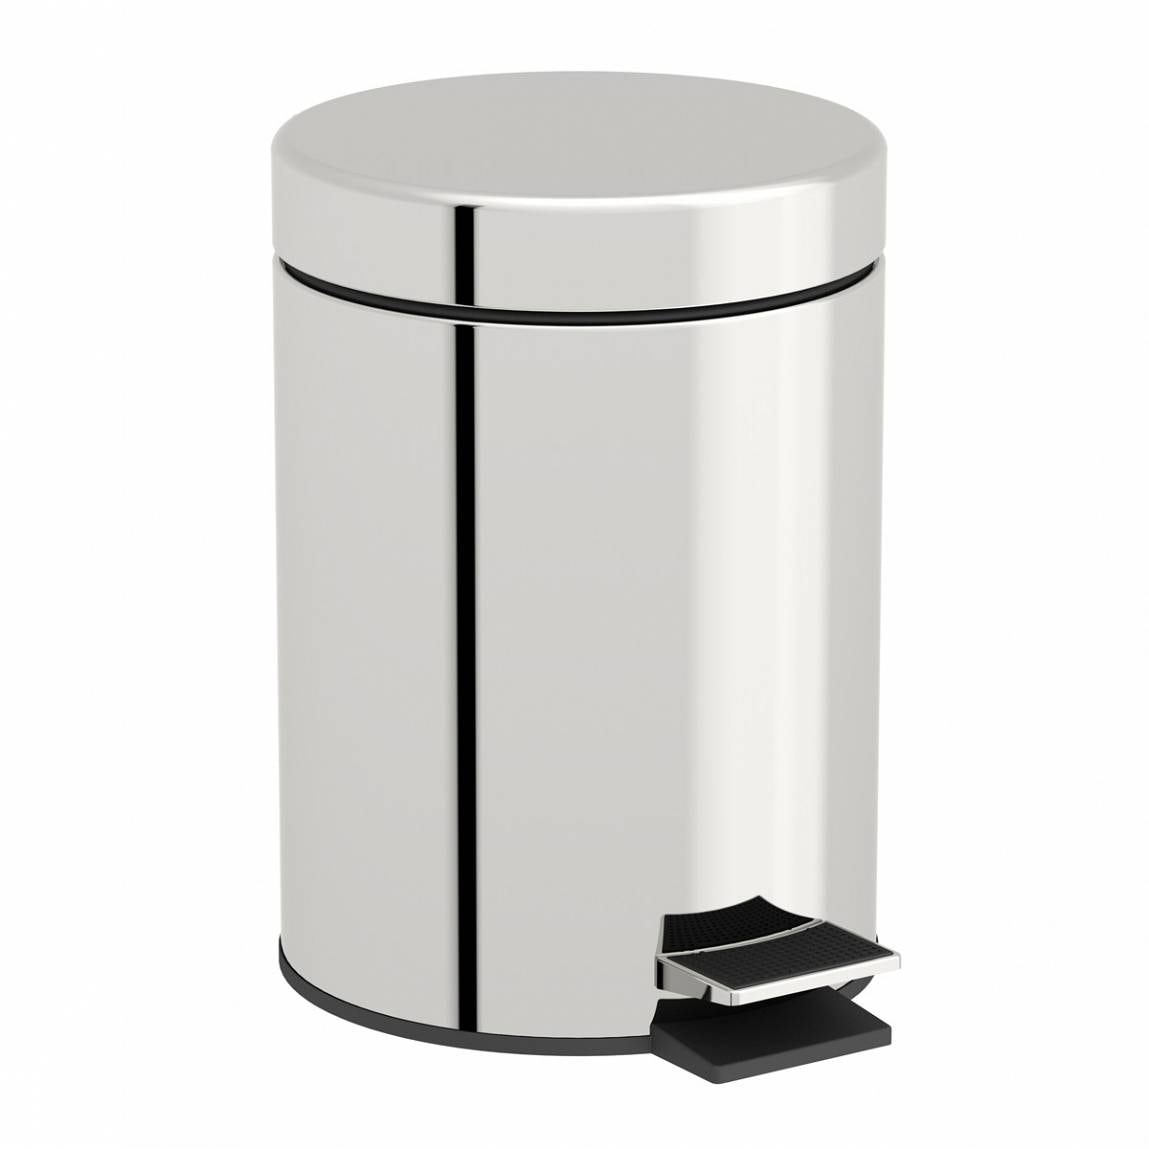 Options Round Stainless Steel 5l Bin